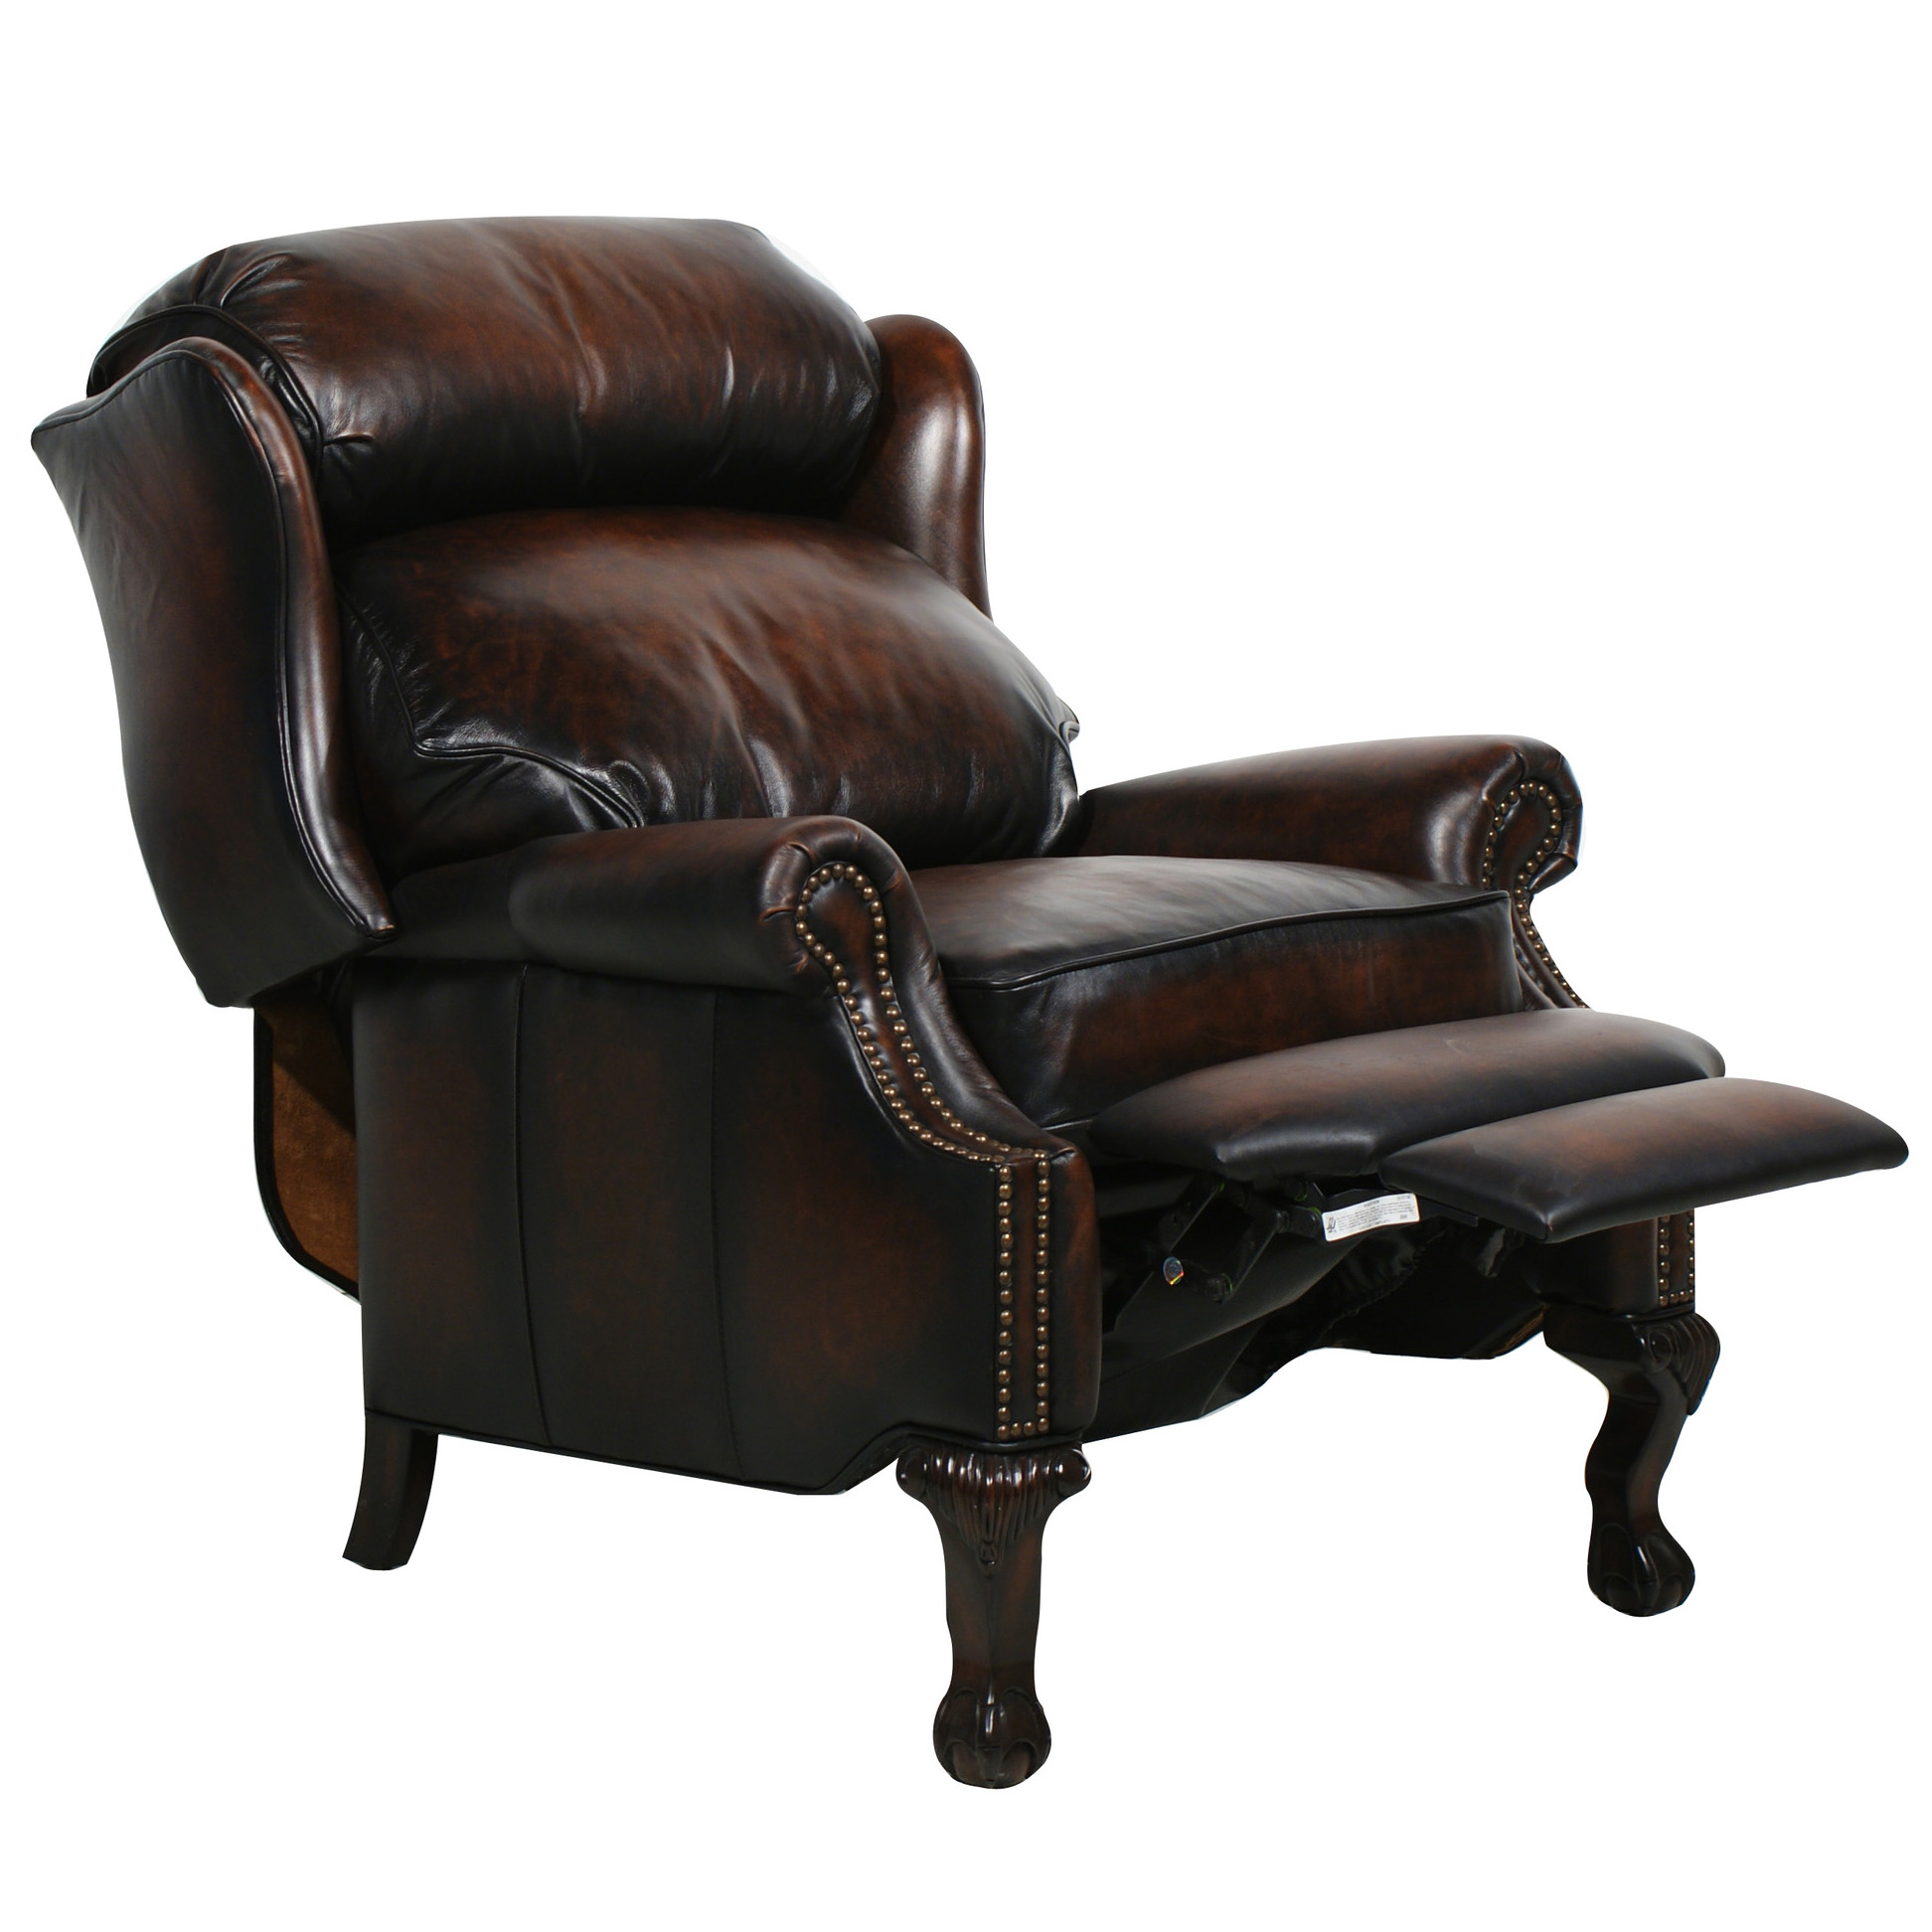 Leather Reclining Chairs Barcalounger Danbury Ii Recliner Chair Leather Recliner Chair